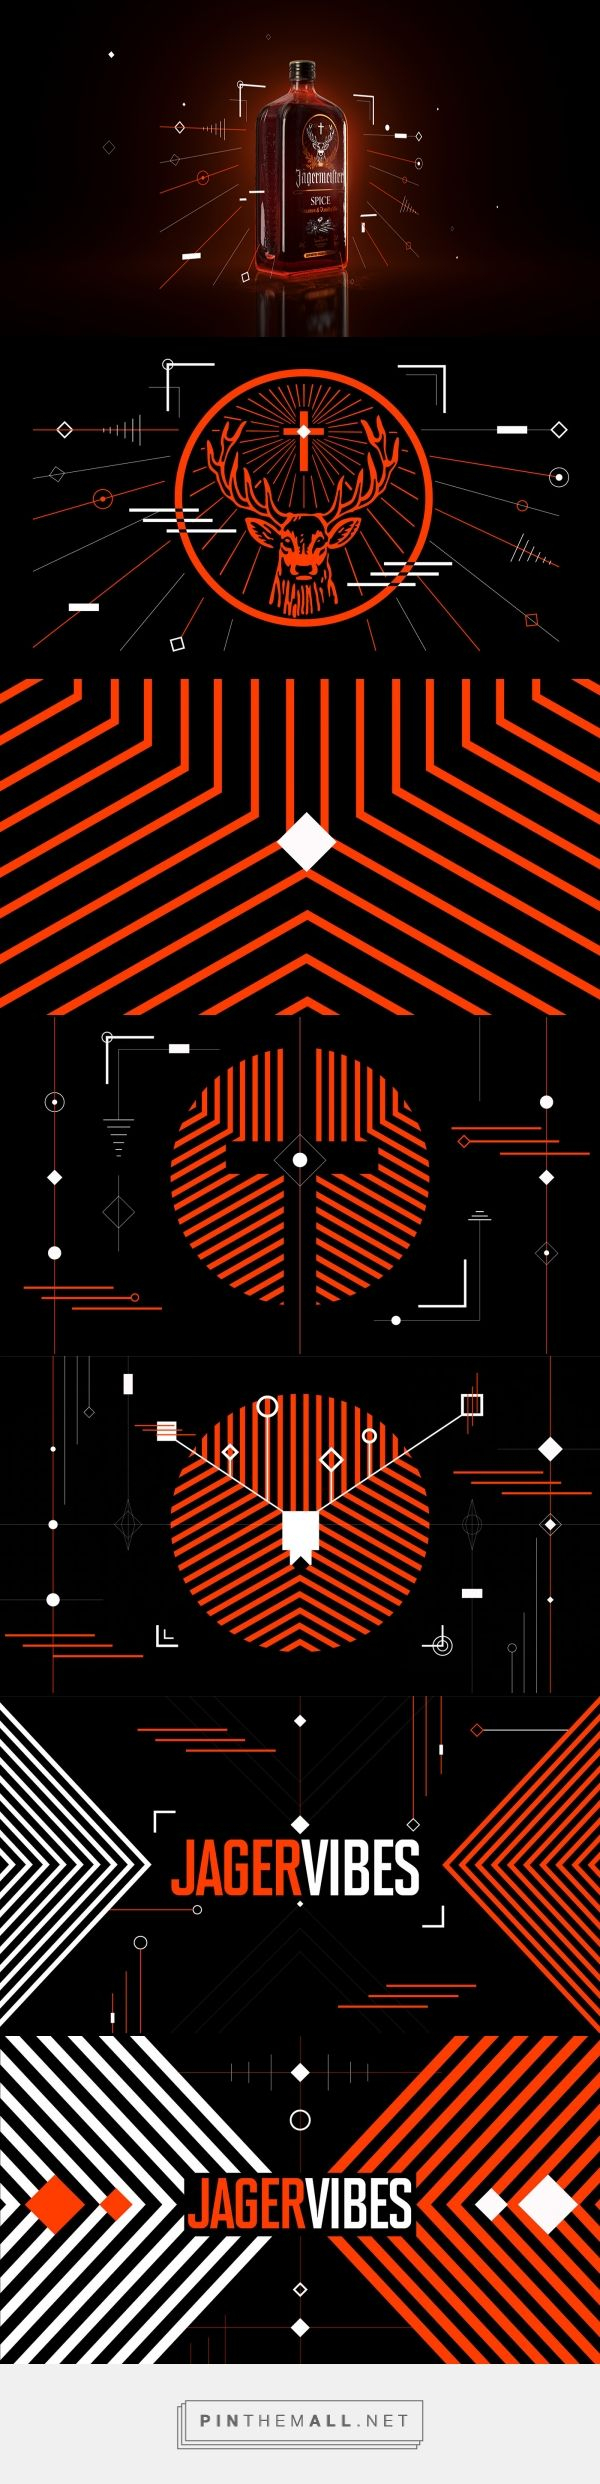 Jagermeister on Behance - created via https://pinthemall.net